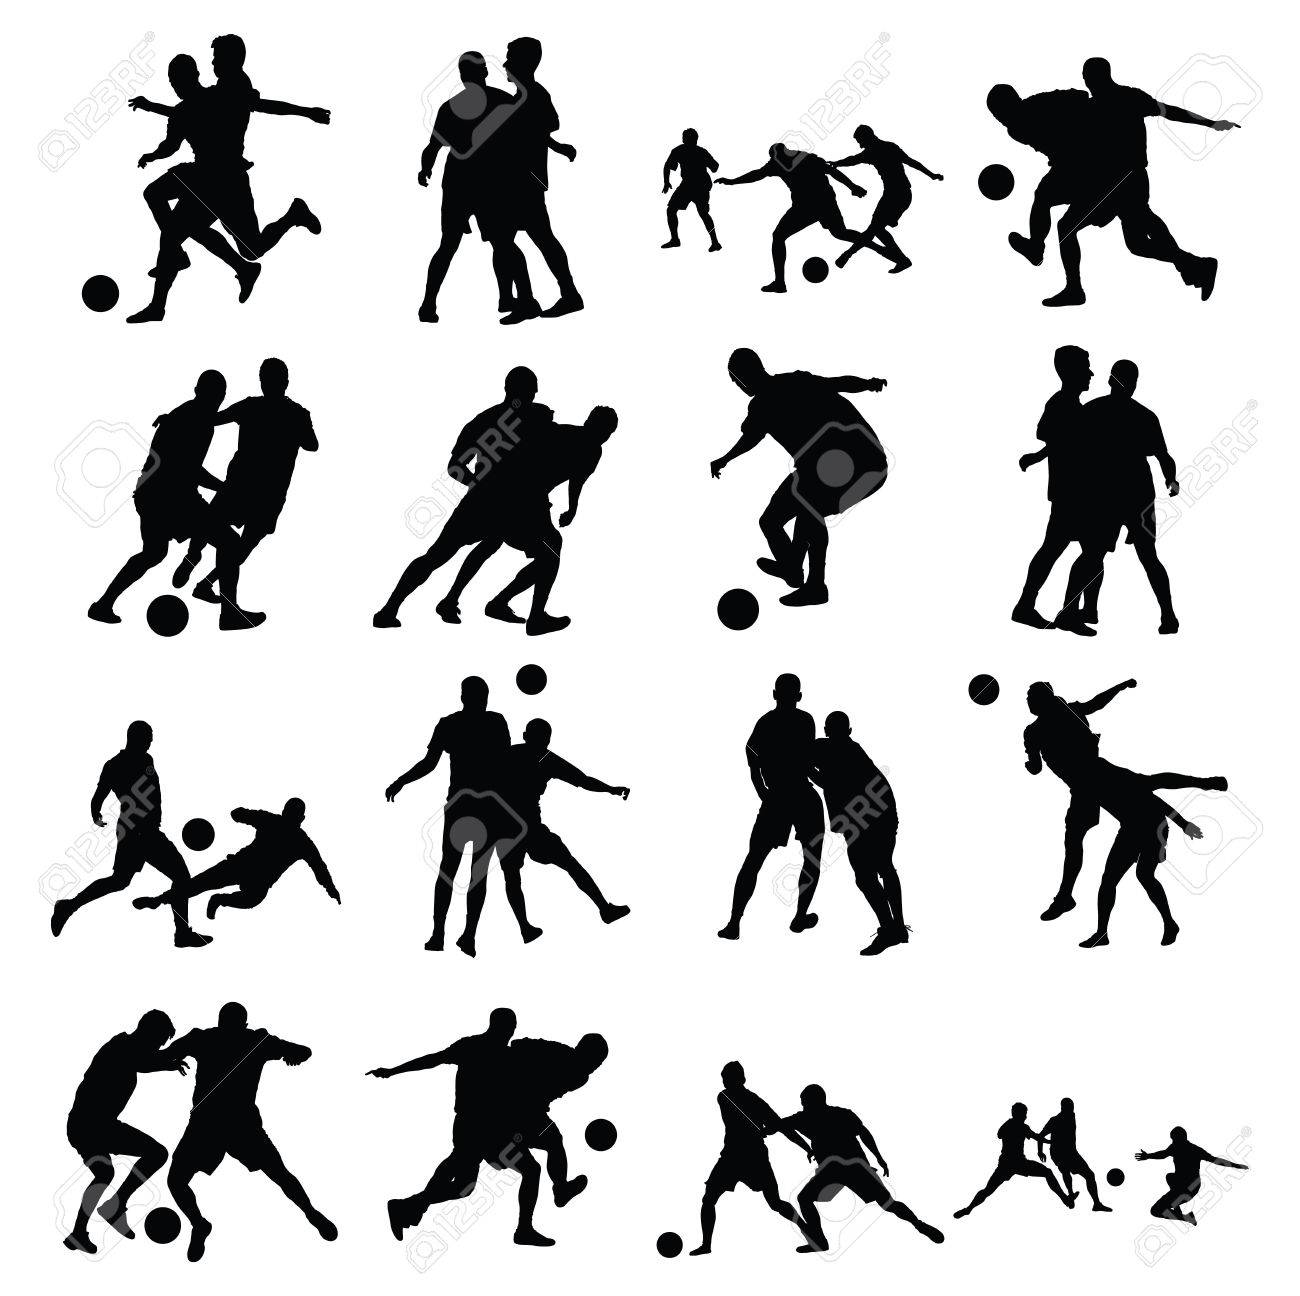 Different poses of soccer players vector silhouette isolated on white background. Very high quality detailed soccer football editable players cutout outlines. - 60856238